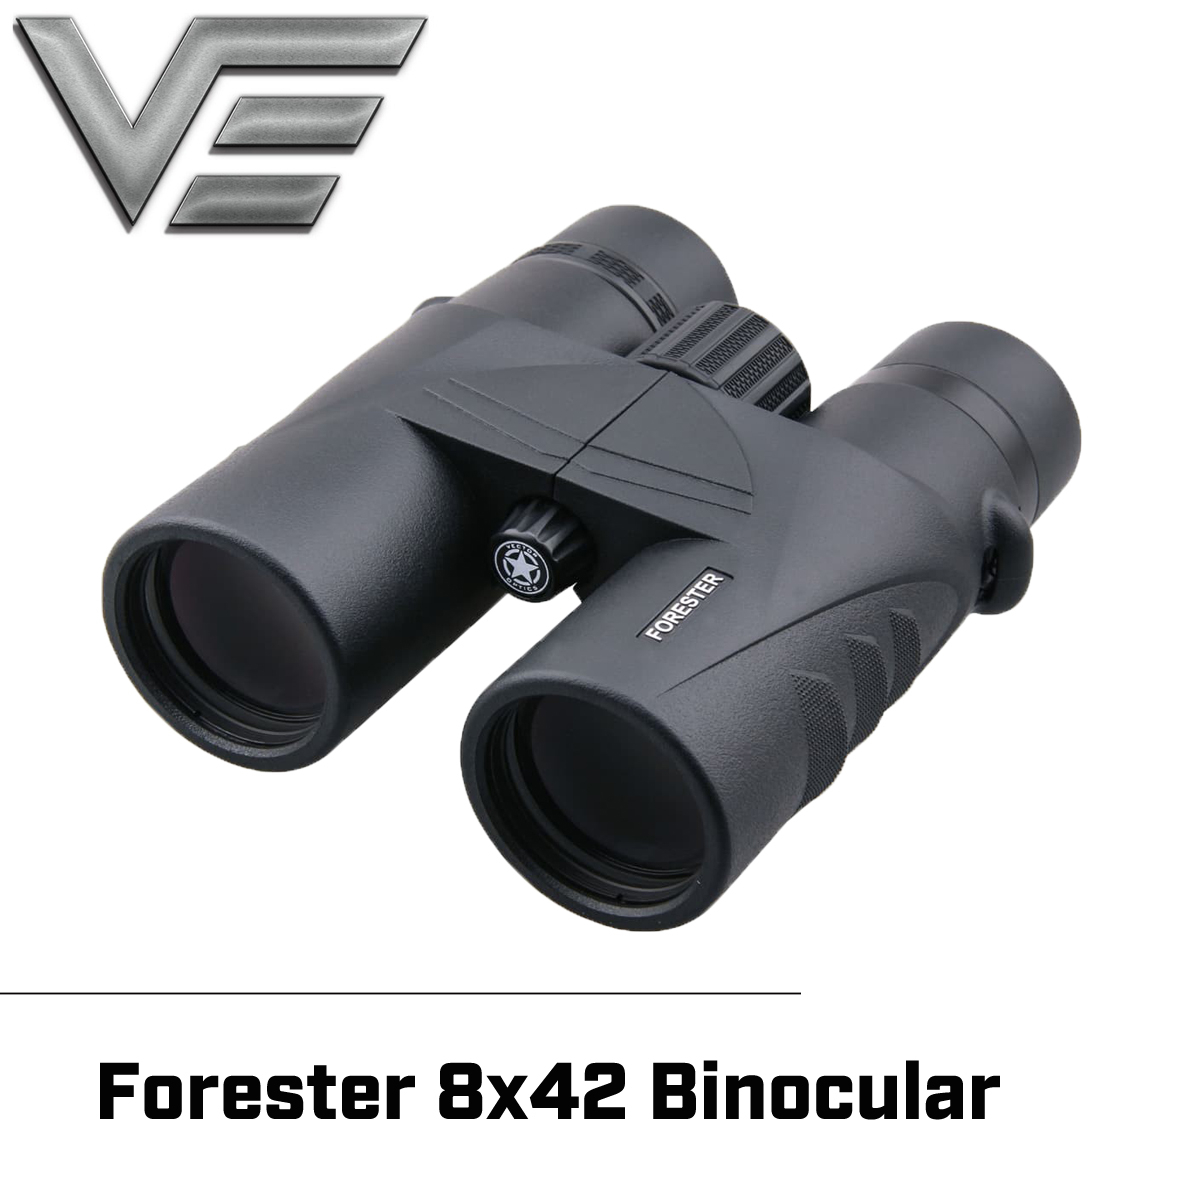 Vector Optics Forester 8x42 Binocular Tactical scope Hunting Sight Water proof 4 Groups 6 Lens Silver Coated Prism for Shooting